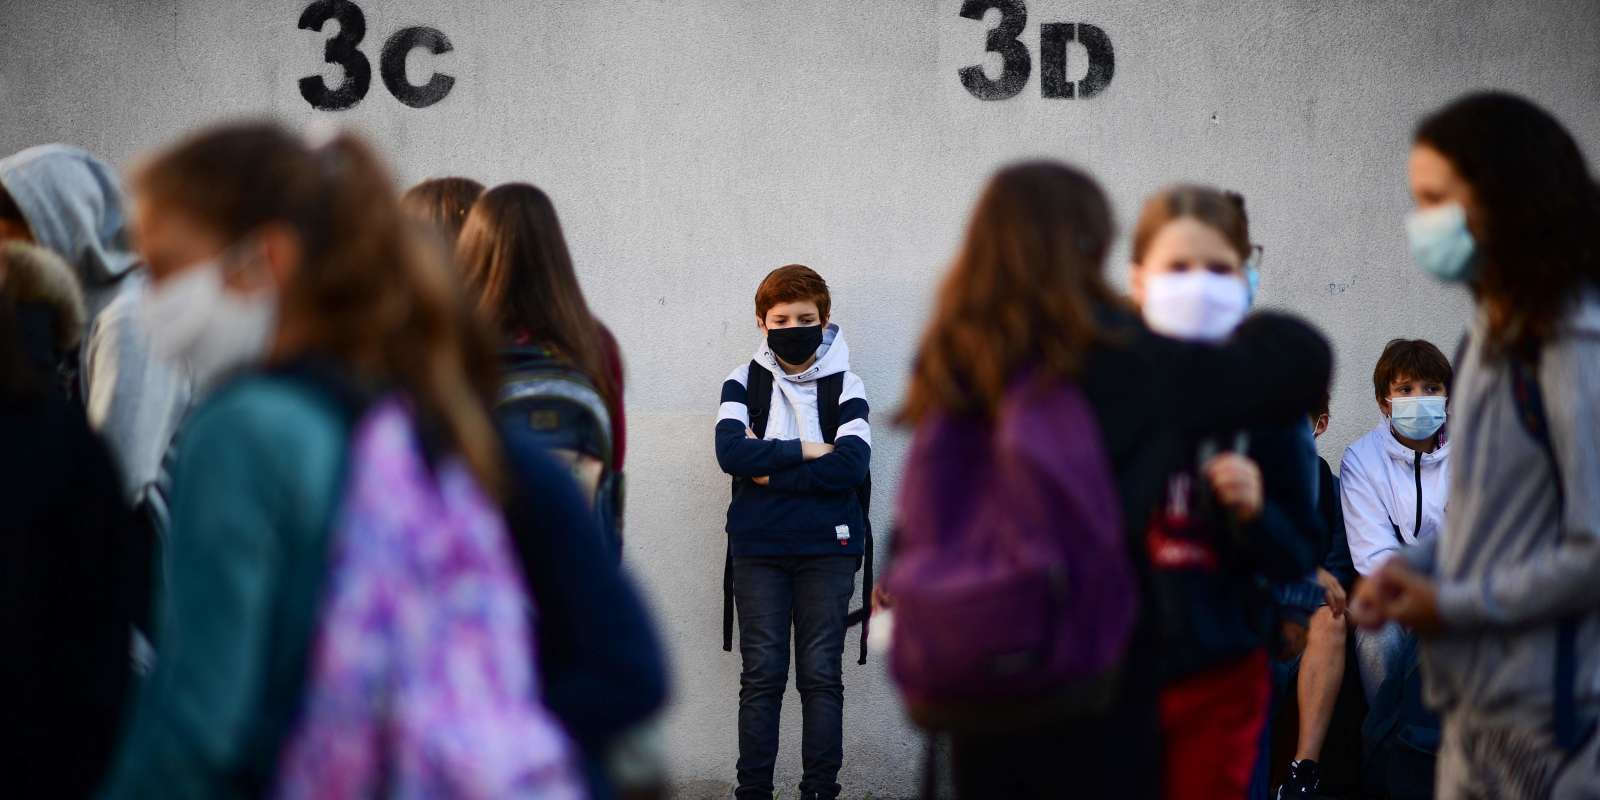 (FILES) In this file photograph taken on September 1, 2020, pupils wearing protective masks stand at Françoise-Giroud middle school in Vincennes, east of Paris, on the first day of the school year amidst the Covid-19 epidemic. In a statement issued on August 26, 2021, France's Education Minister Jean-Michel Blanquer said he hoped the start of the 2021-2022 school year scheduled for September 2, 2021, would be